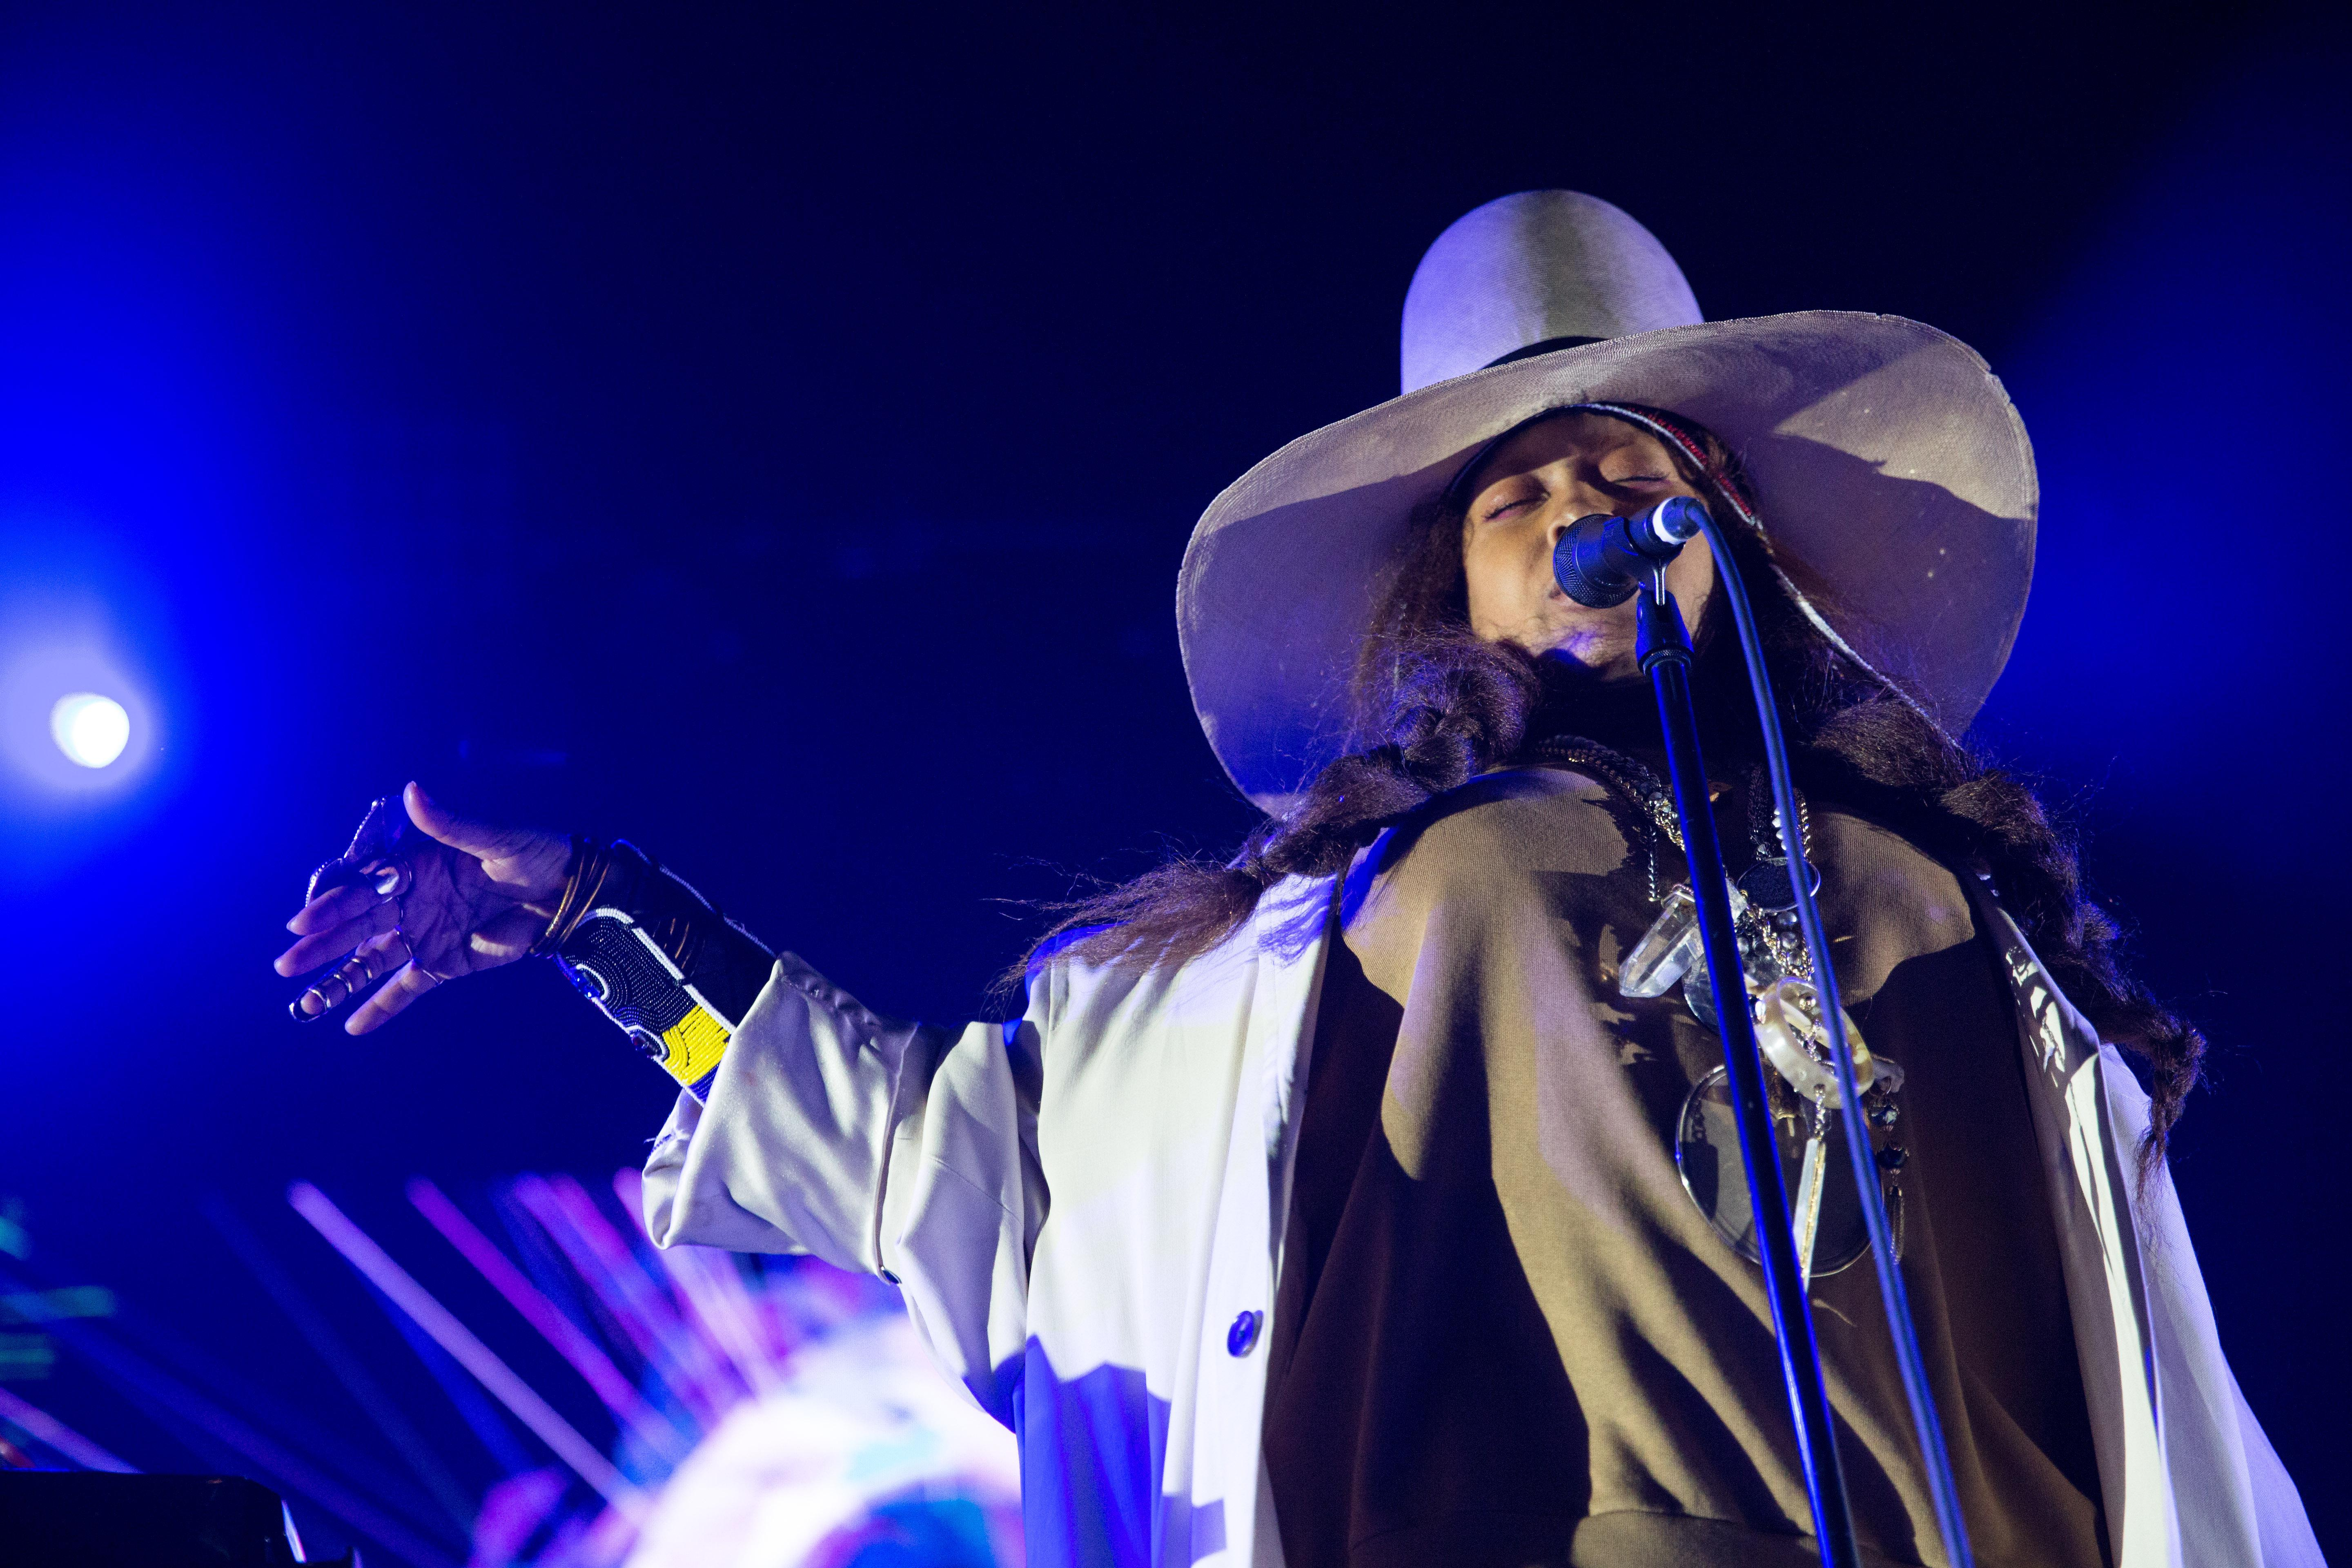 Erykah Bade performs the Soul'd Out Music Festival at Arlene Schnitzer Concert Hall, Wednesday, April 18, 2018.